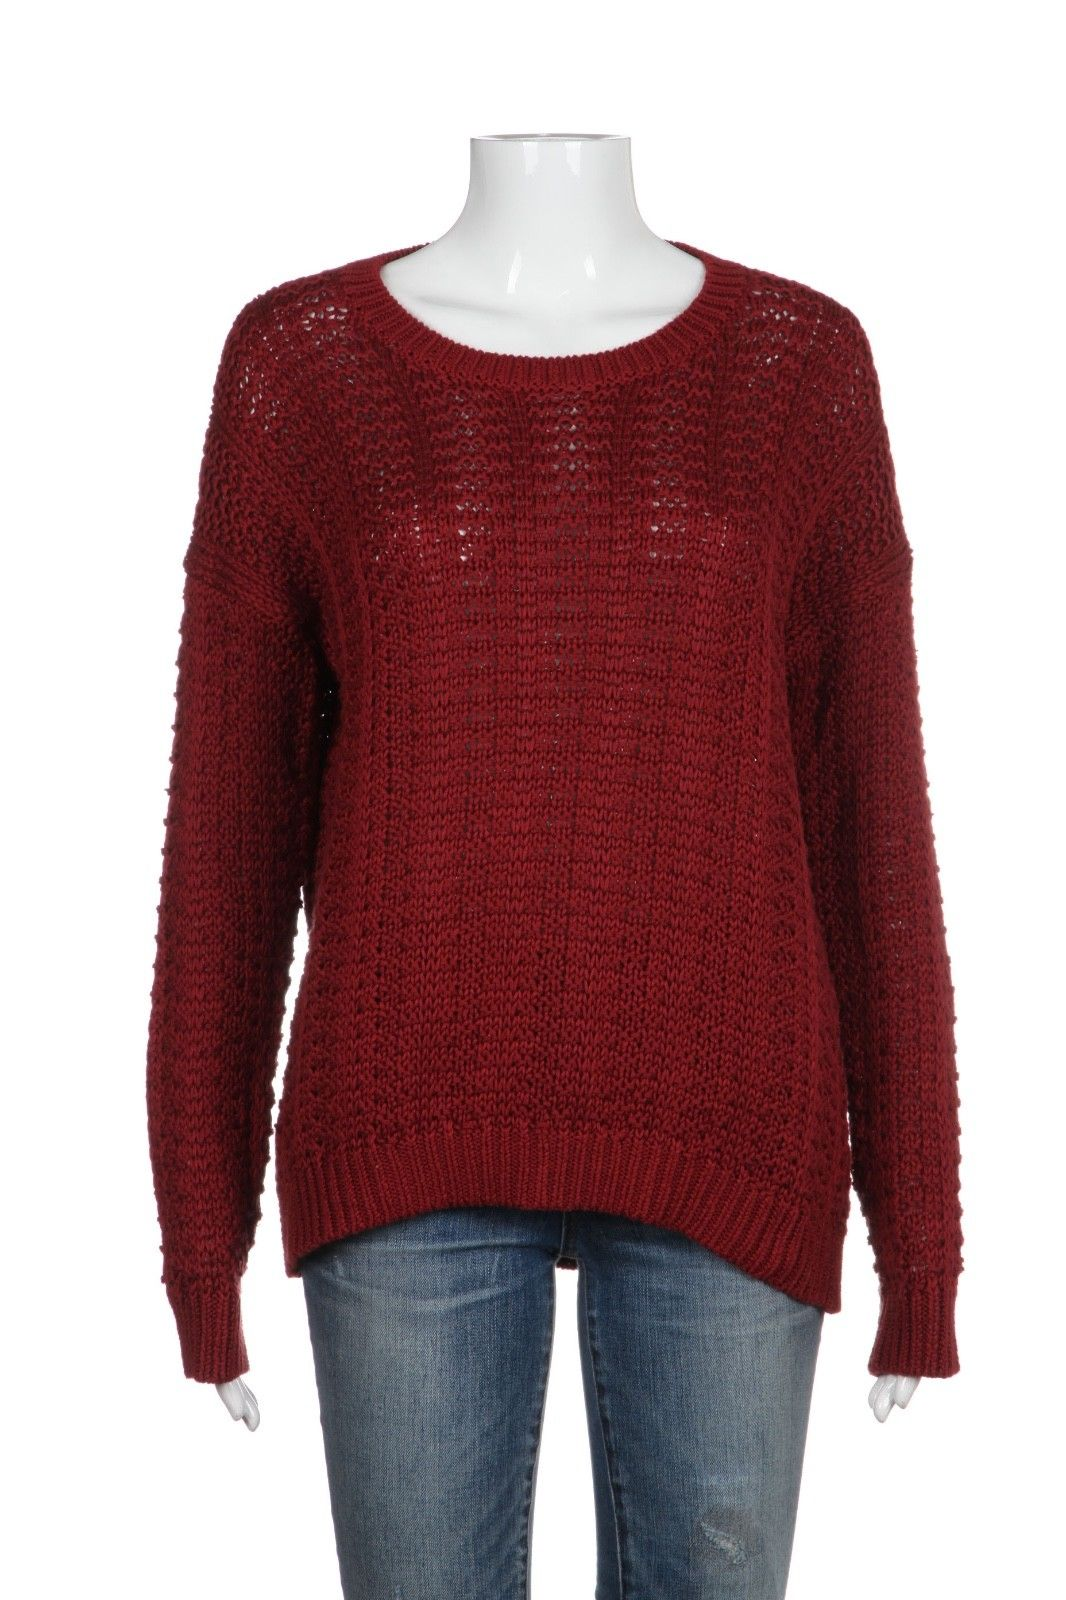 VINCE Chunky Knit Sweater Size S